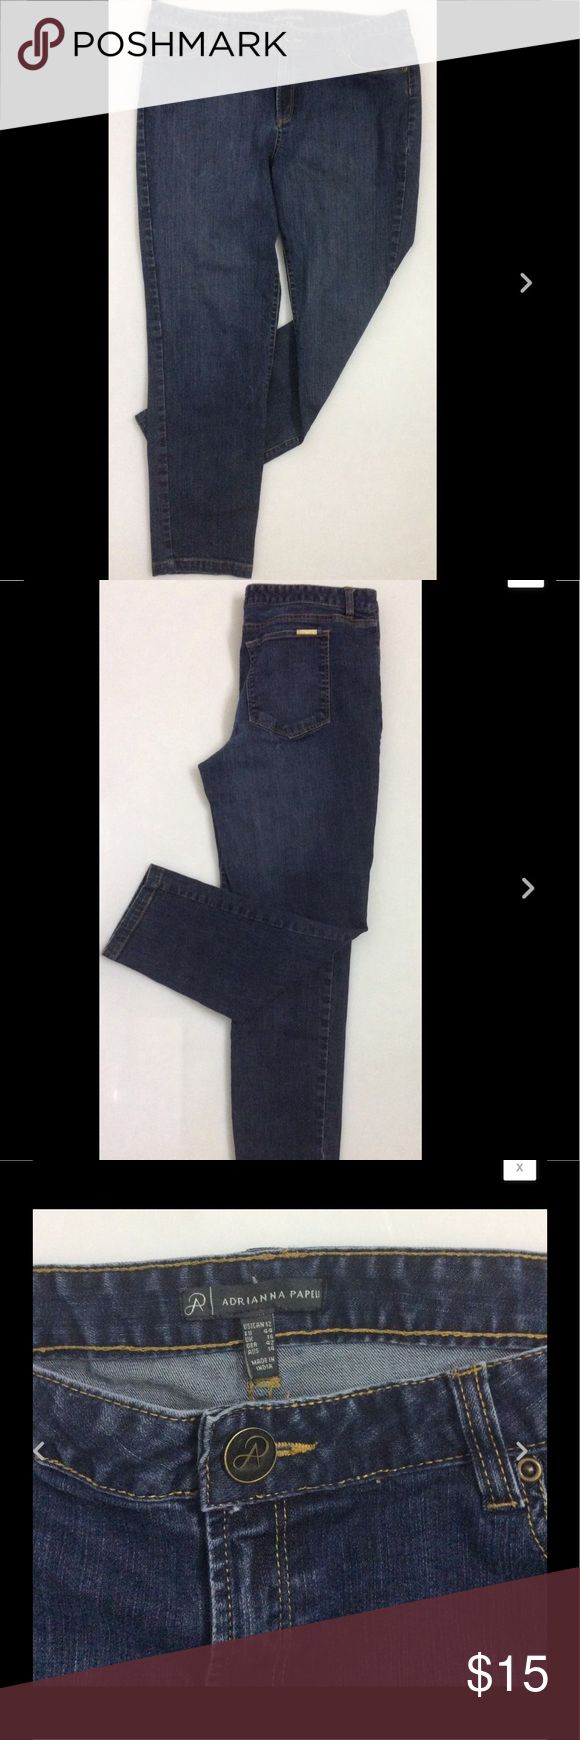 """Womens ADRIANNA PAPELL Tapered Jeans / Size 12 Womens ADRIANNA PAPELL Tapered Jeans / Classic Rise Stretch Cotton Denim Size 12  Waist 32""""  Inseam 27""""  Front Rise 10""""   Thanks for looking!   B1019 Jeans"""